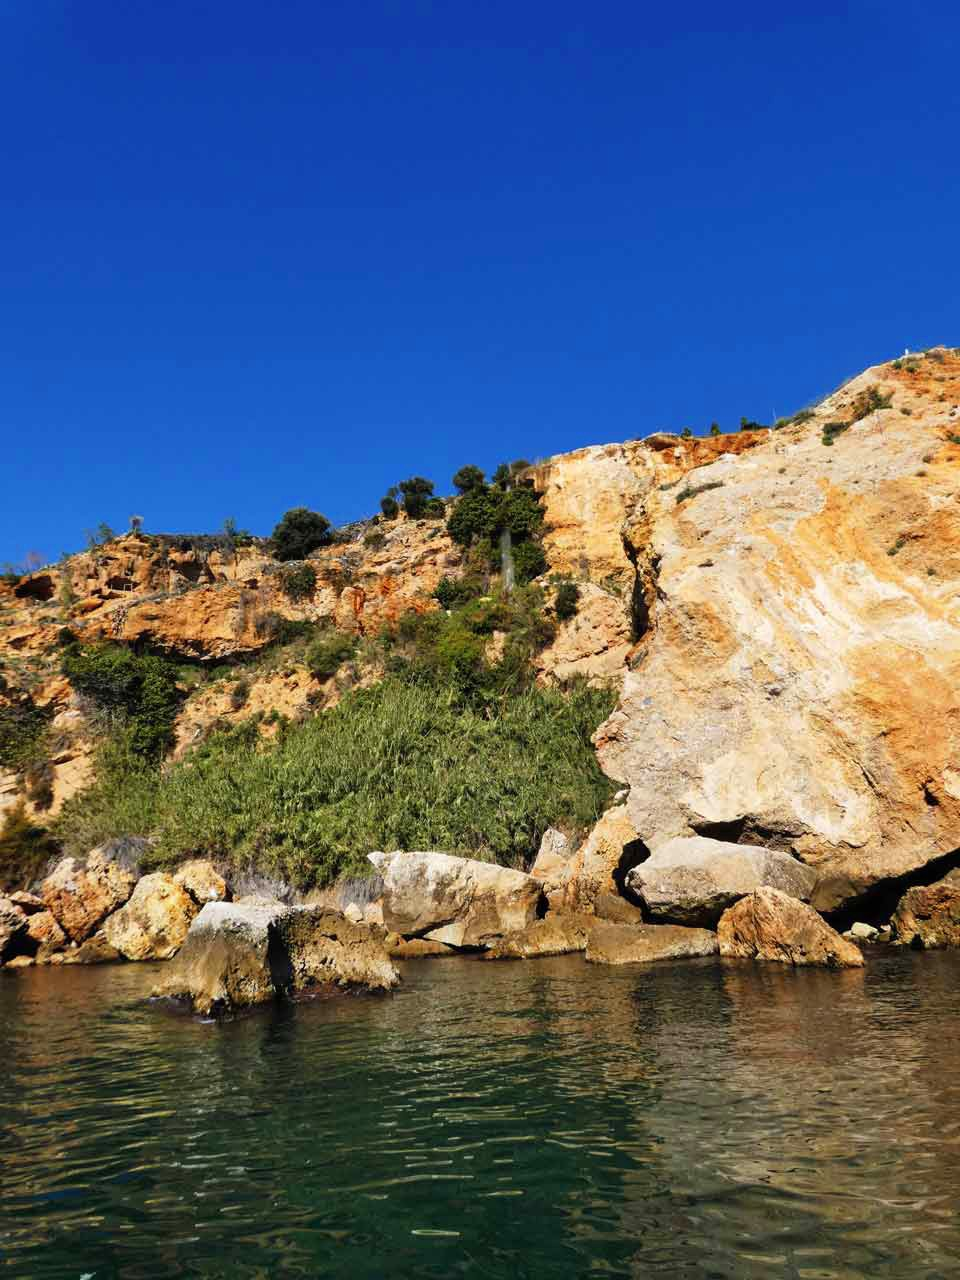 Boat-trips-tours-costa-del-sol-axarquia-torre-del-mar-nerja-maro-costaboattrips-com-things-to-do-children-nature